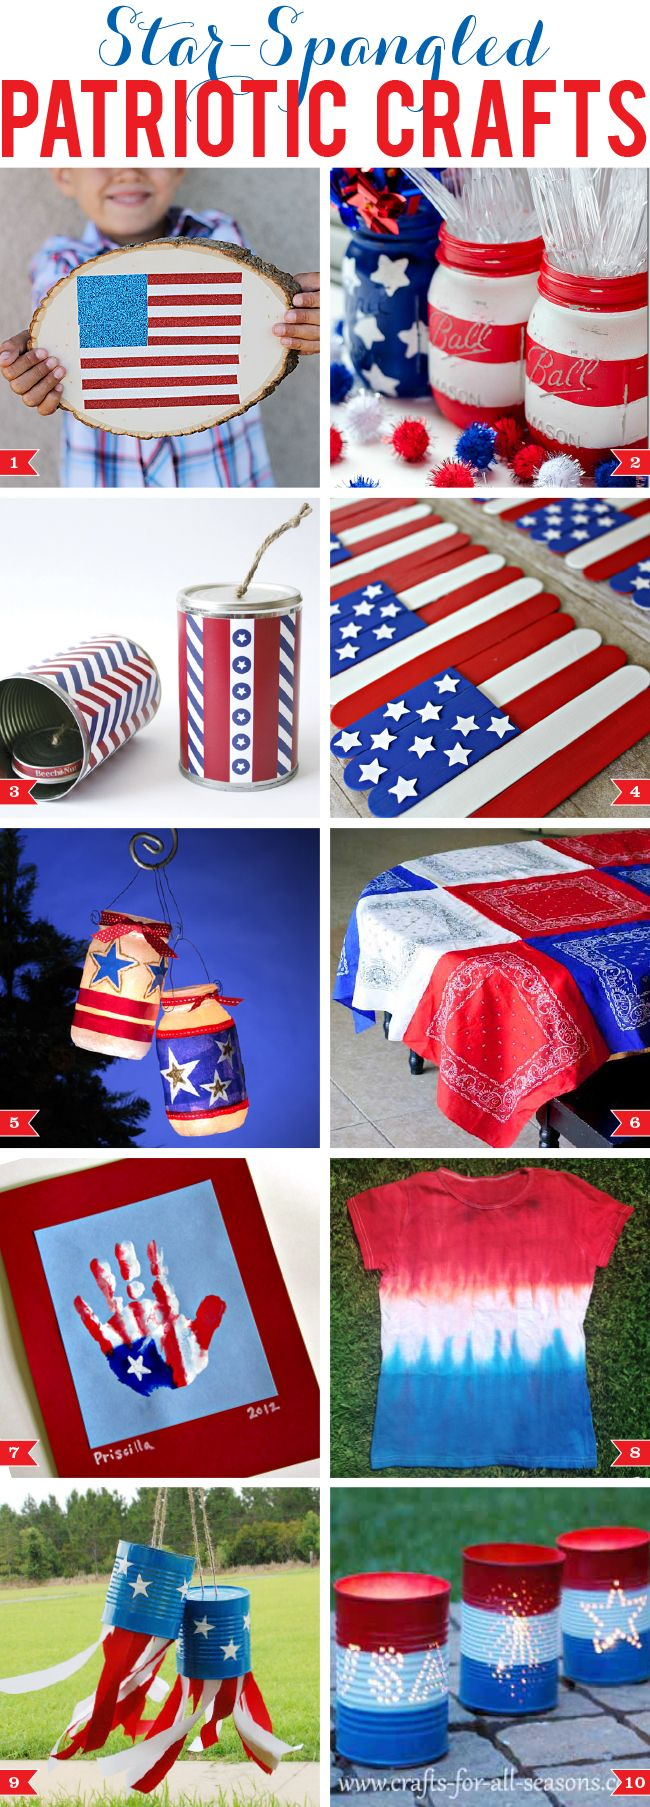 Star-spangled patriotic crafts! LOVE!